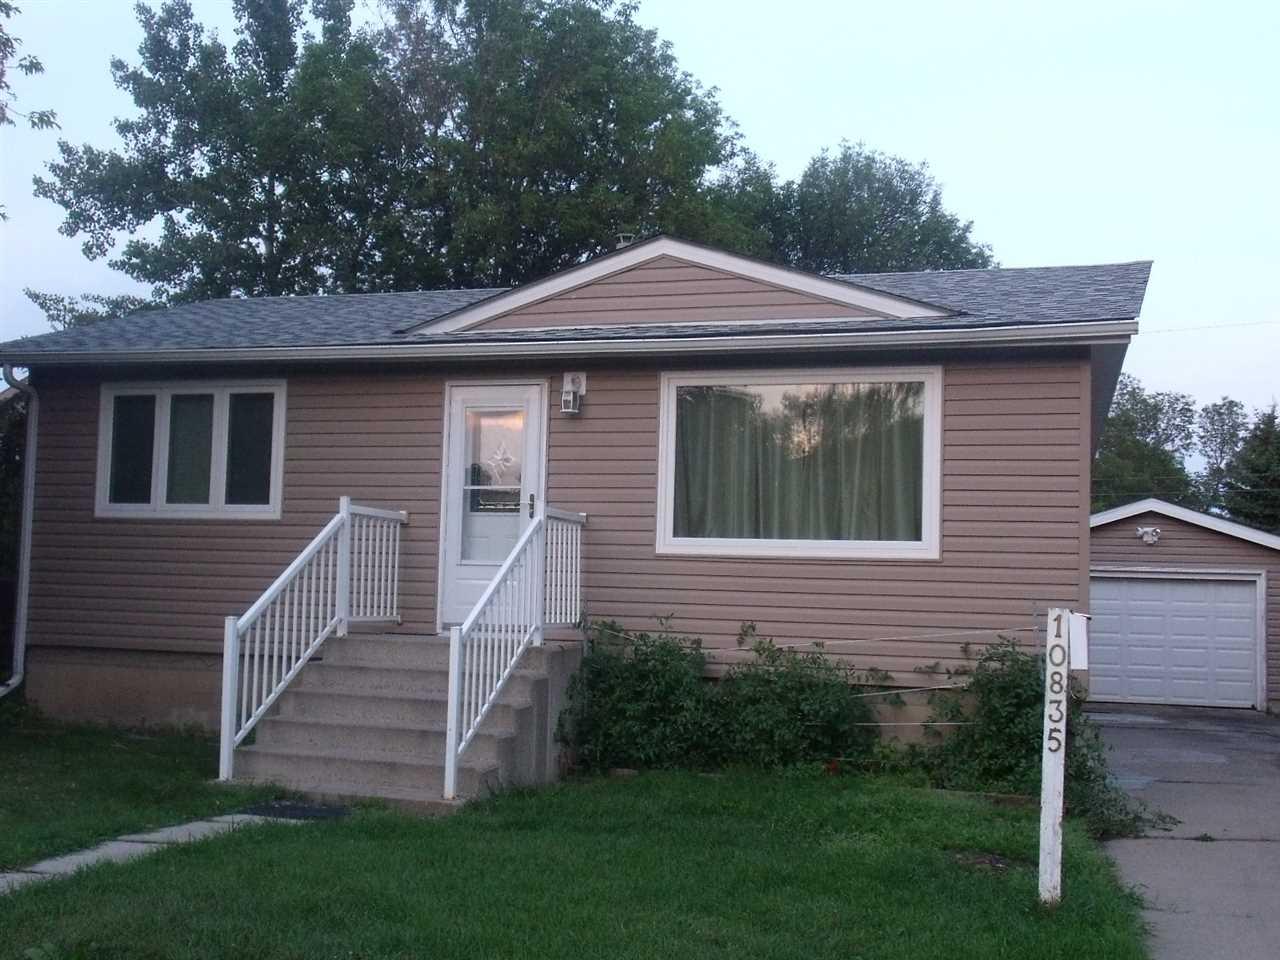 10835 153 Street NW, 4 bed, 2 bath, at $299,000